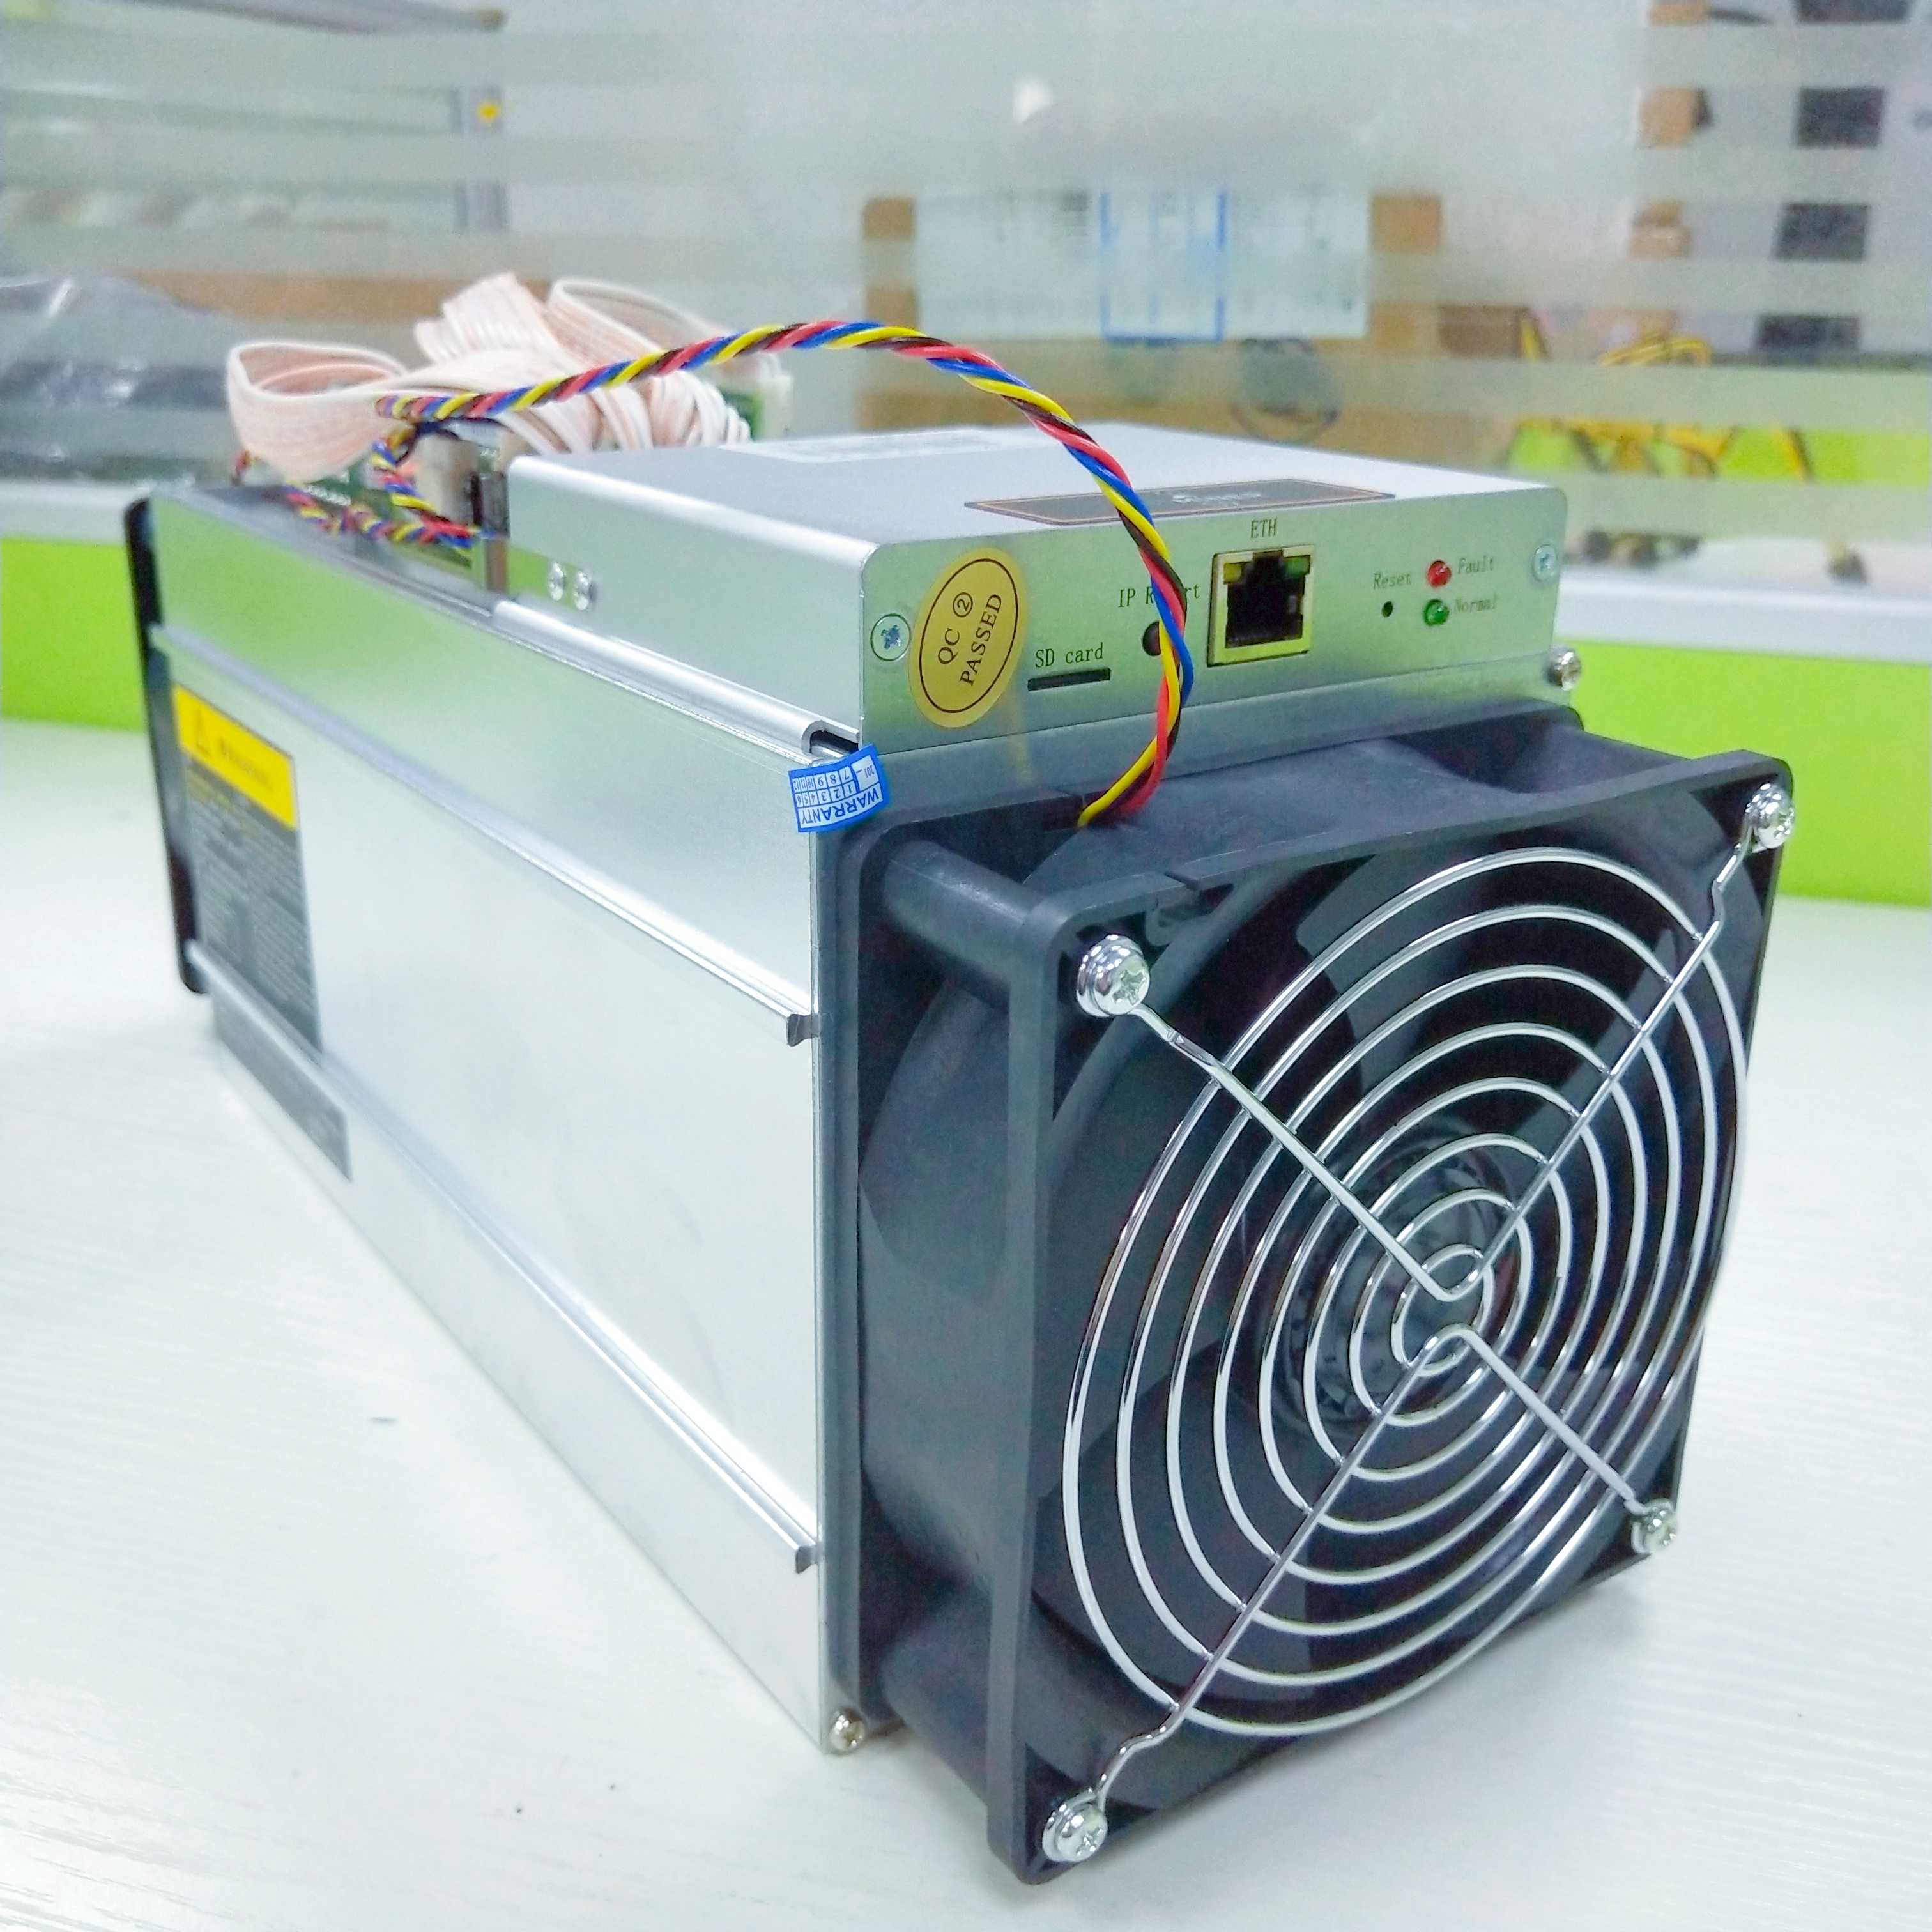 Tomax high quality & New Bitmain official Antiminer S9 14 5th Bitcoin miner  s9 ASIC mining miner S9, View s9 antminer factory price S9 miner antminer